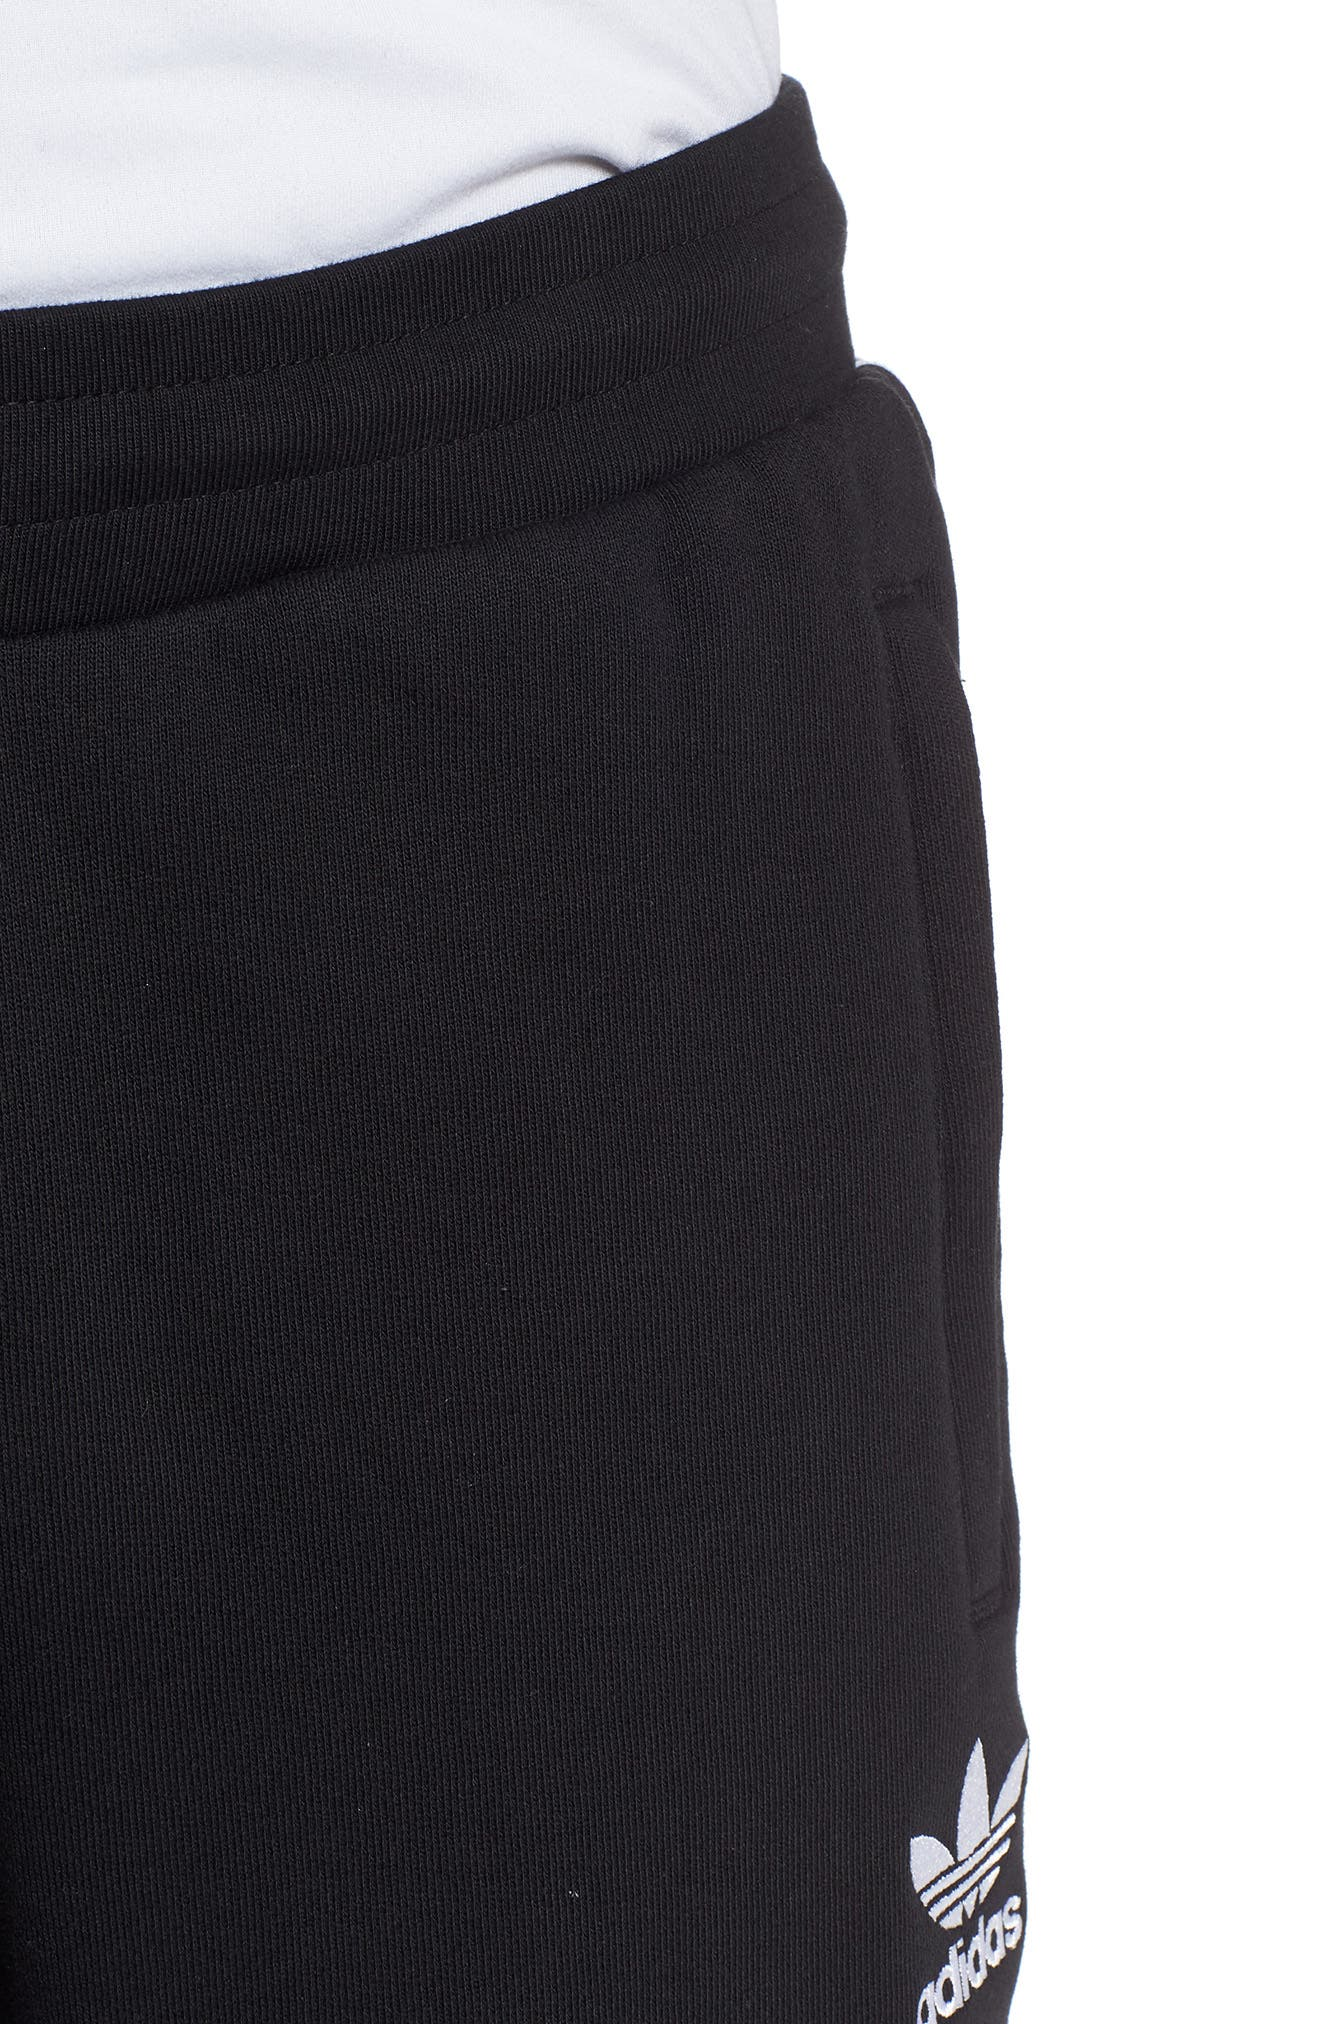 Adicolor Track Pants,                             Alternate thumbnail 4, color,                             BLACK